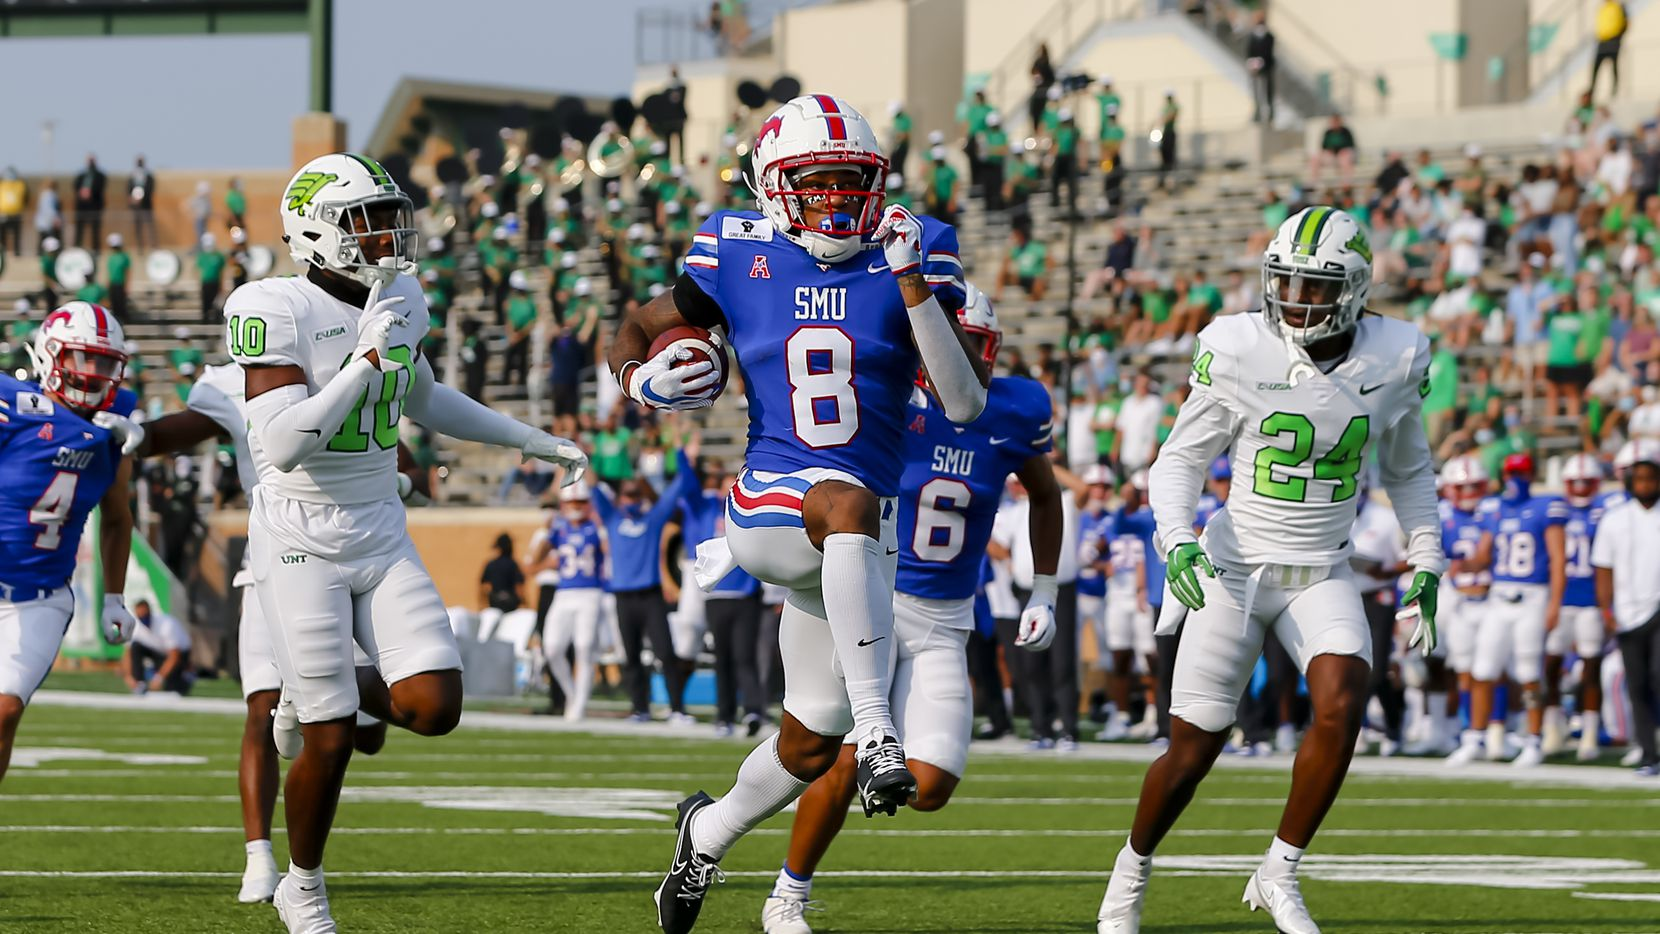 DENTON, TX - SEPTEMBER 19: Southern Methodist Mustangs wide receiver Reggie Roberson Jr. (8) scores a touchdown during the game between the North Texas Mean Green and the Southern Methodist Mustangs on September 19, 2020 at Apogee Stadium in Denton, Texas. (Photo by Matthew Pearce/Icon Sportswire via Getty Images)